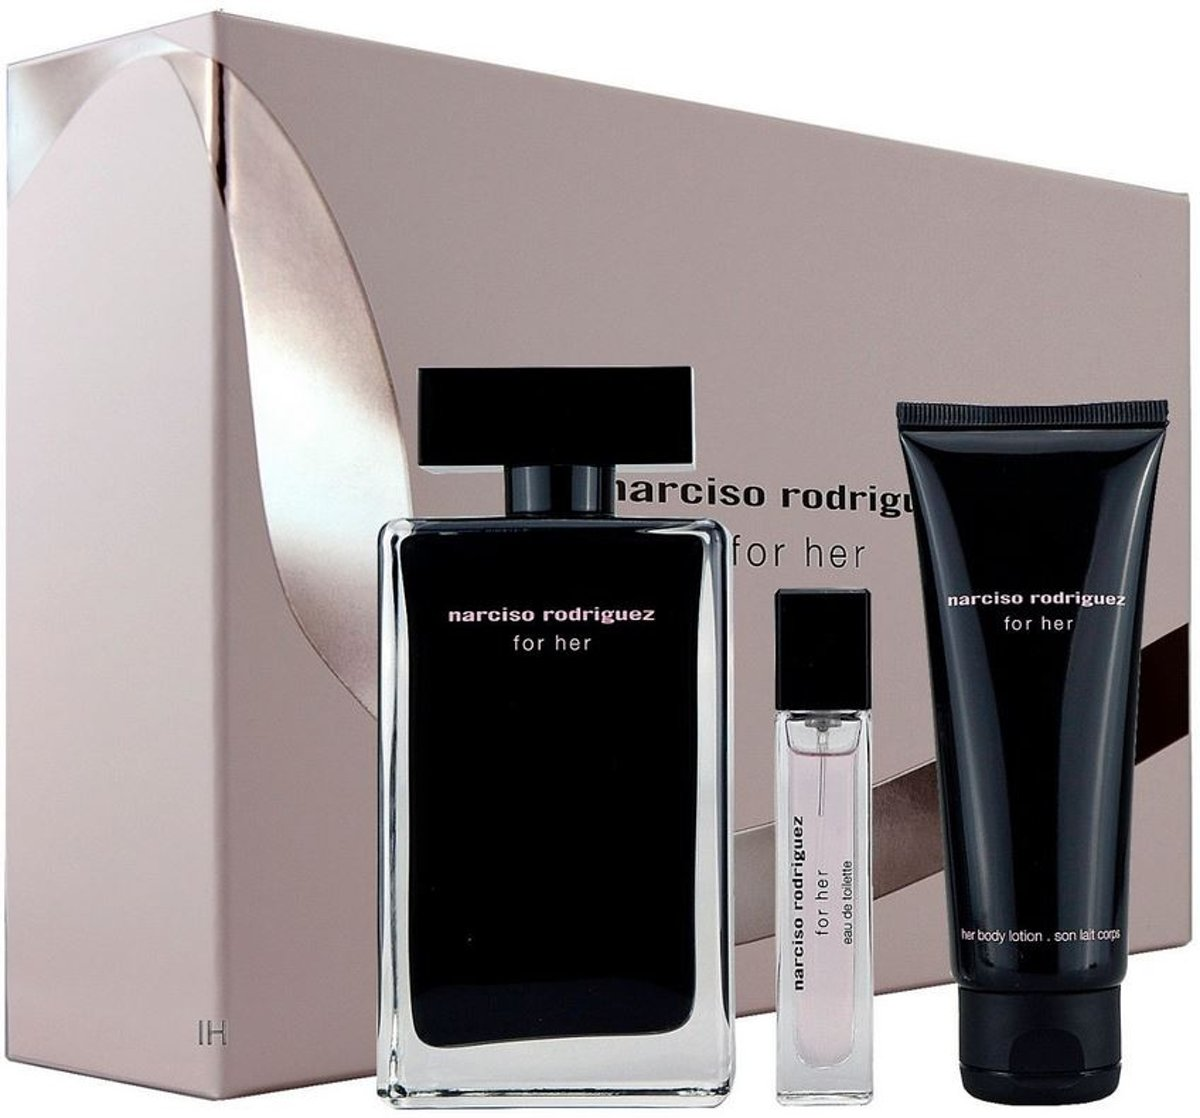 Narciso Rodriguez - Eau de toilette - For her 100ml eau de toilette + 75ml bodylotion + 10ml eau de toilette - Gifts ml